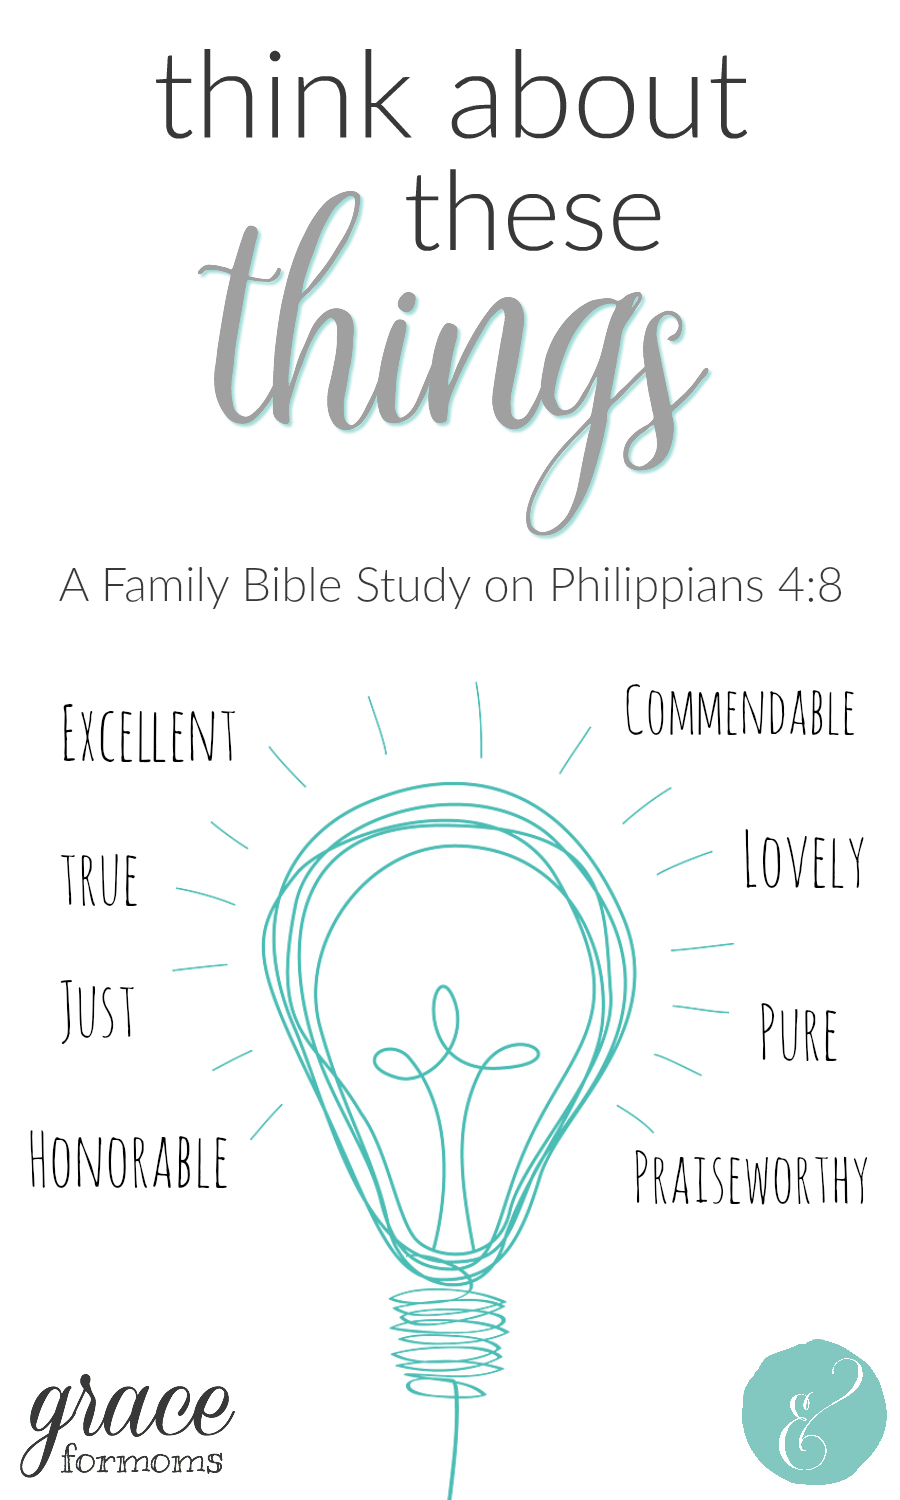 Family Bible Study on Philippians 4